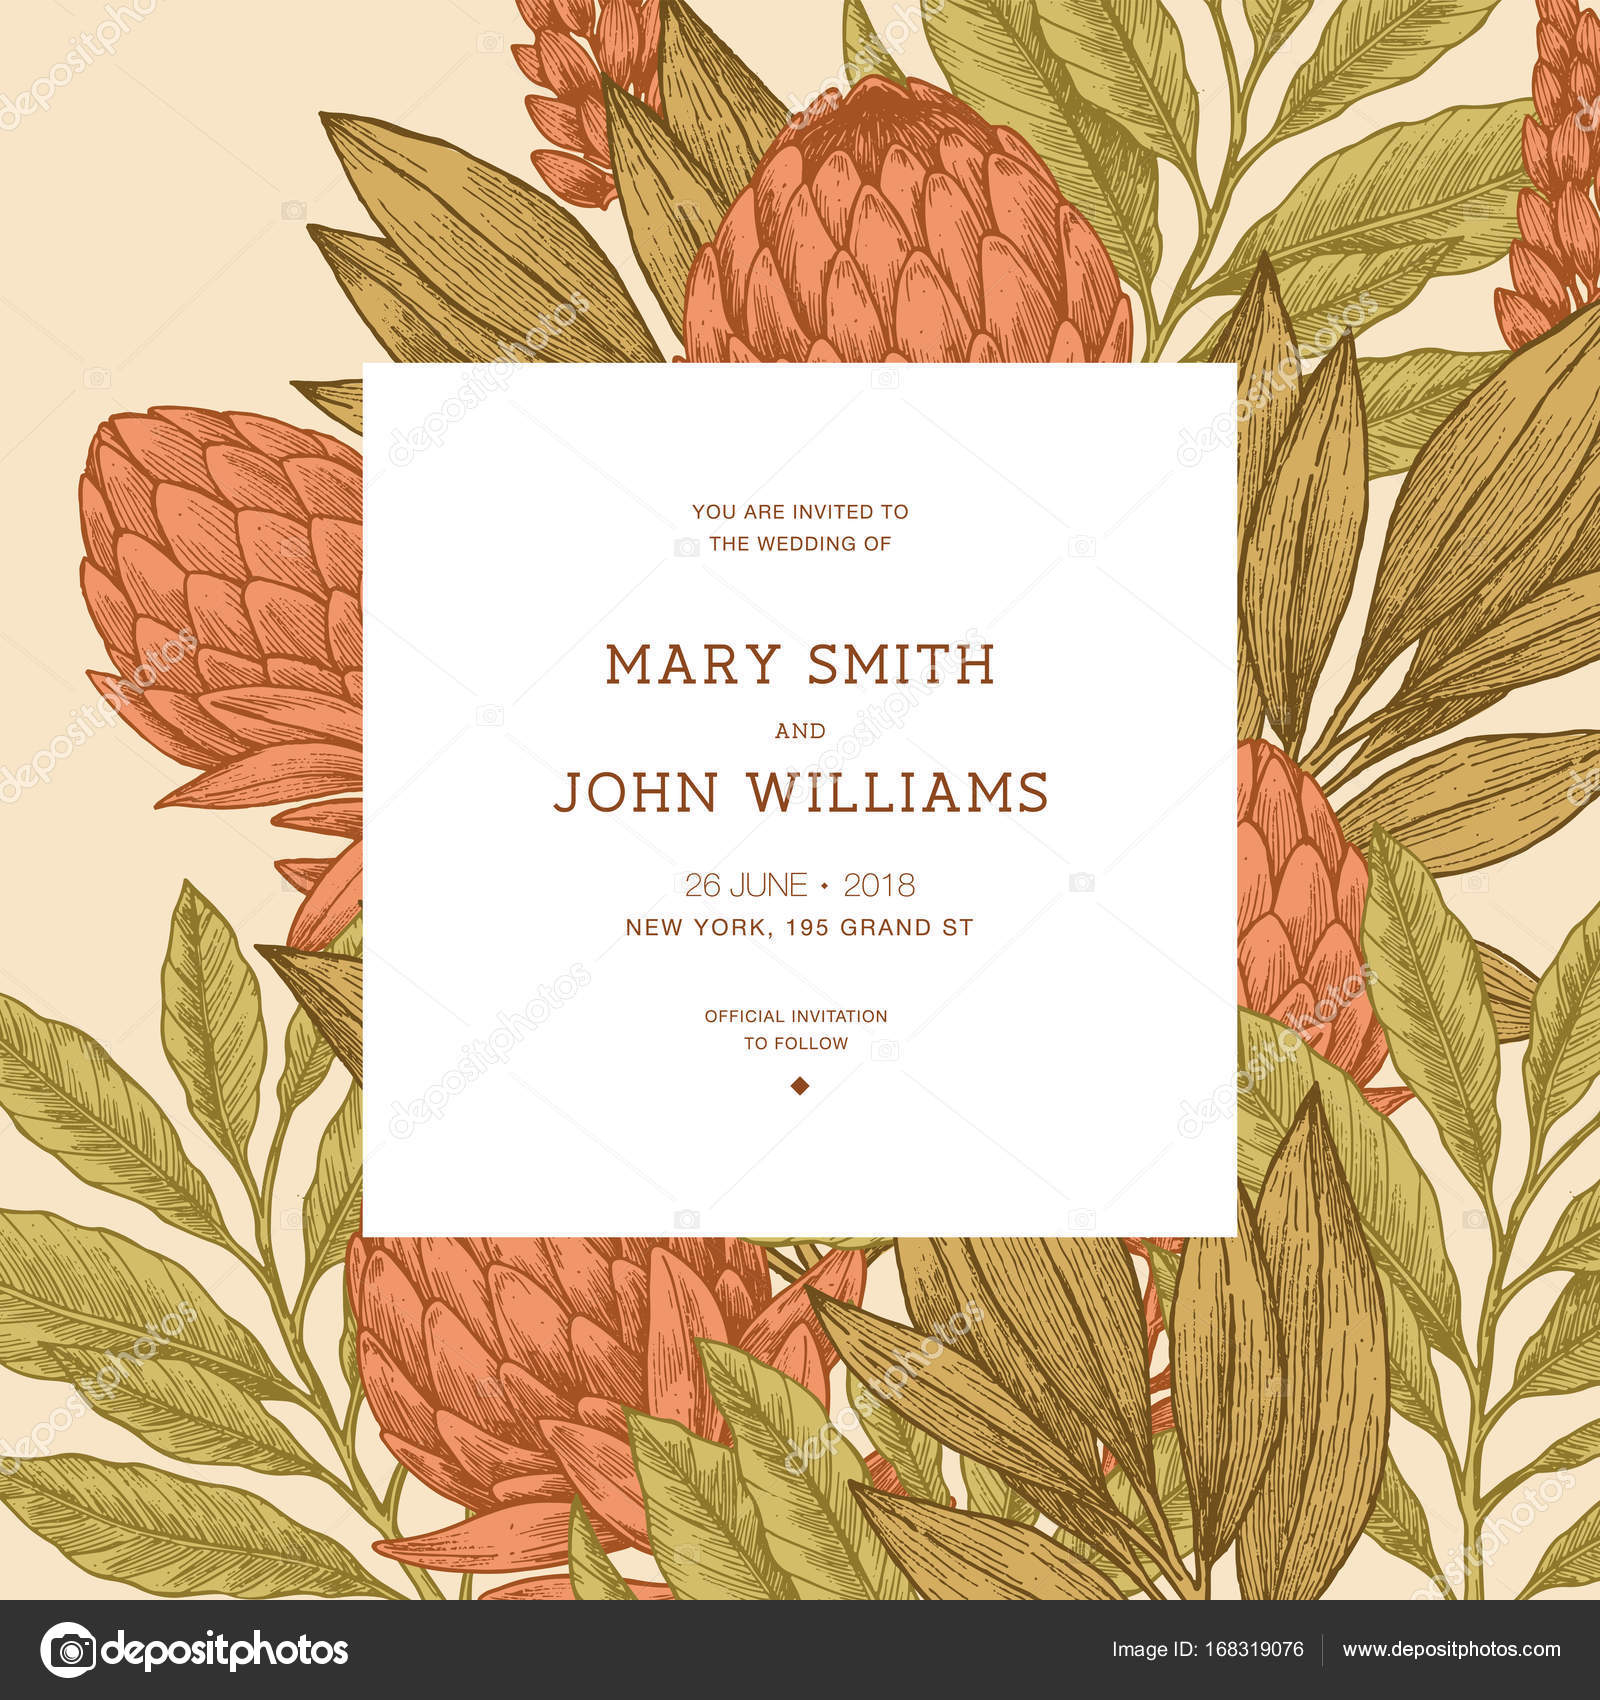 Floral vintage wedding invitation protea botanical vintage floral vintage wedding invitation protea botanical vintage background vector illustration stock vector stopboris Gallery